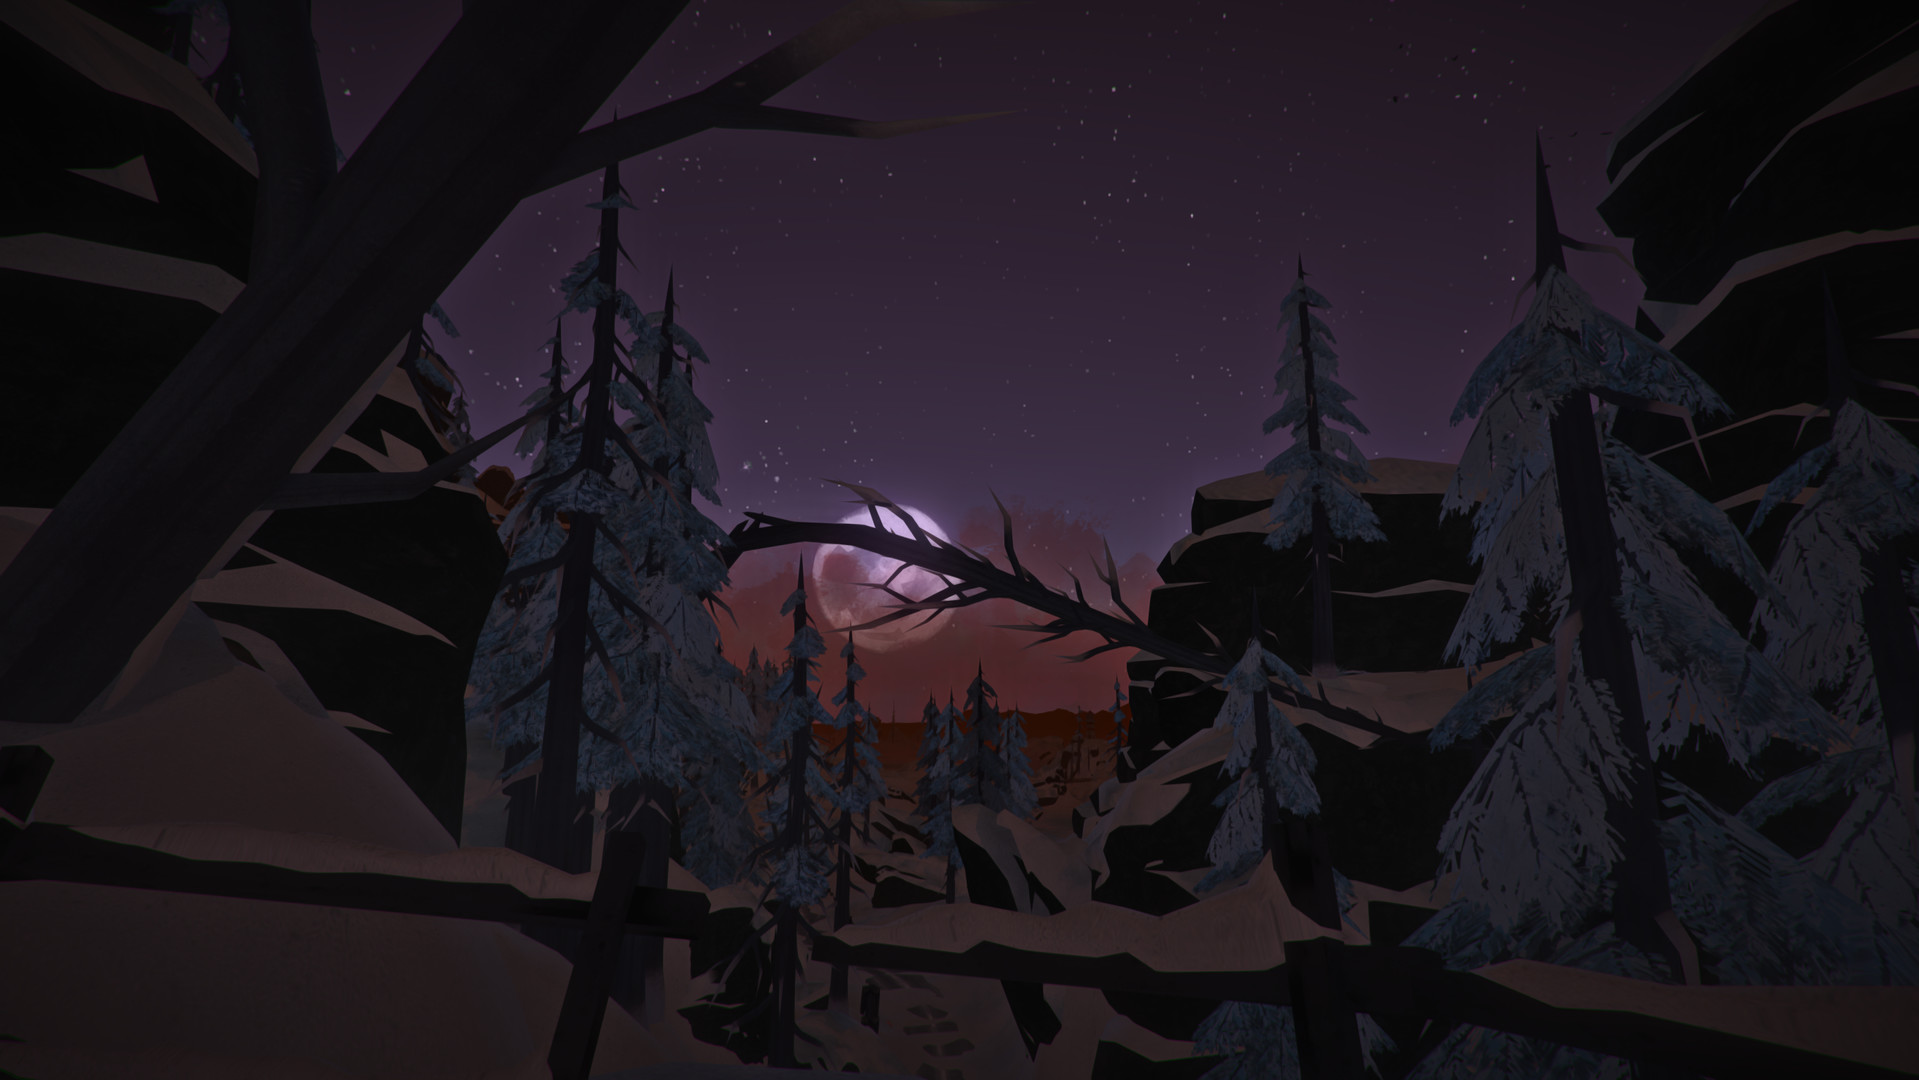 download the long dark-reloaded cracked full version singlelink iso rar multi language free for pc